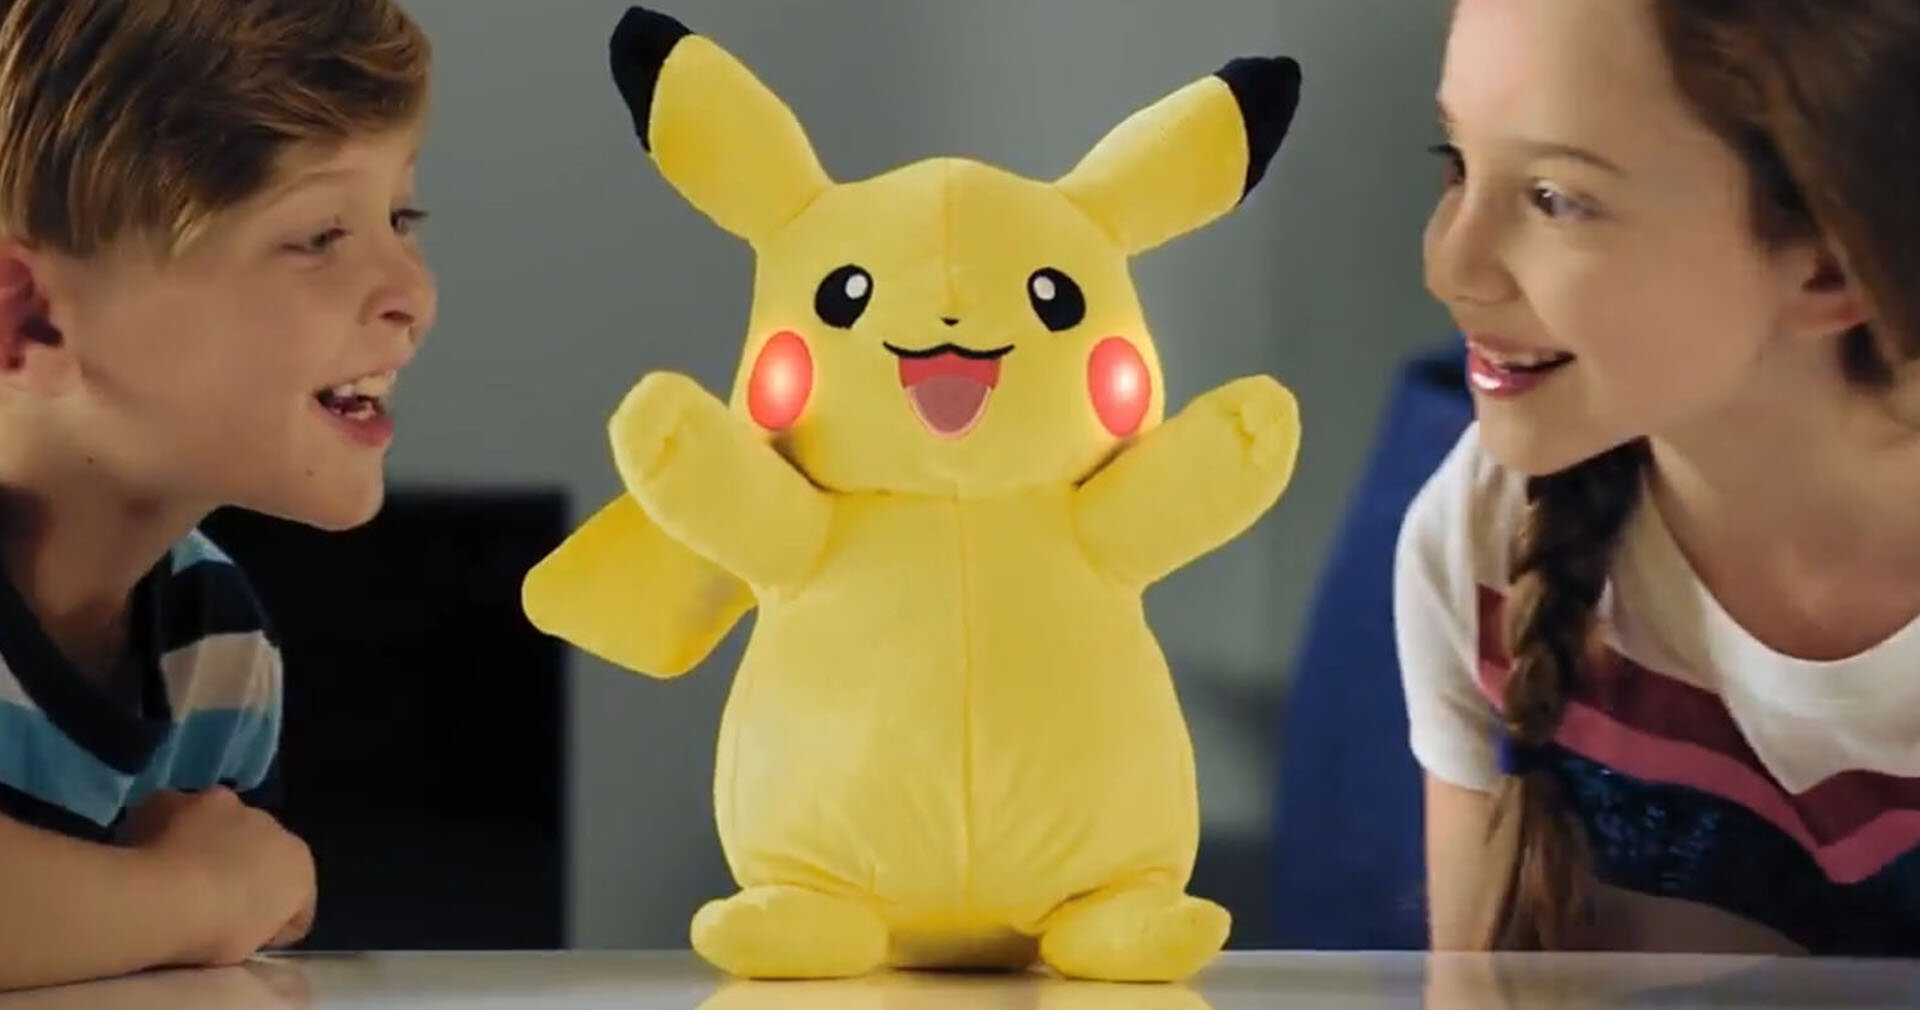 1b7e1cc2d87bf It's Pokémon month here at GamesReviews.com. Not only do we have a review  of Pokémon Let's Go Pikachu, but we are also looking at a number of great  new toys ...